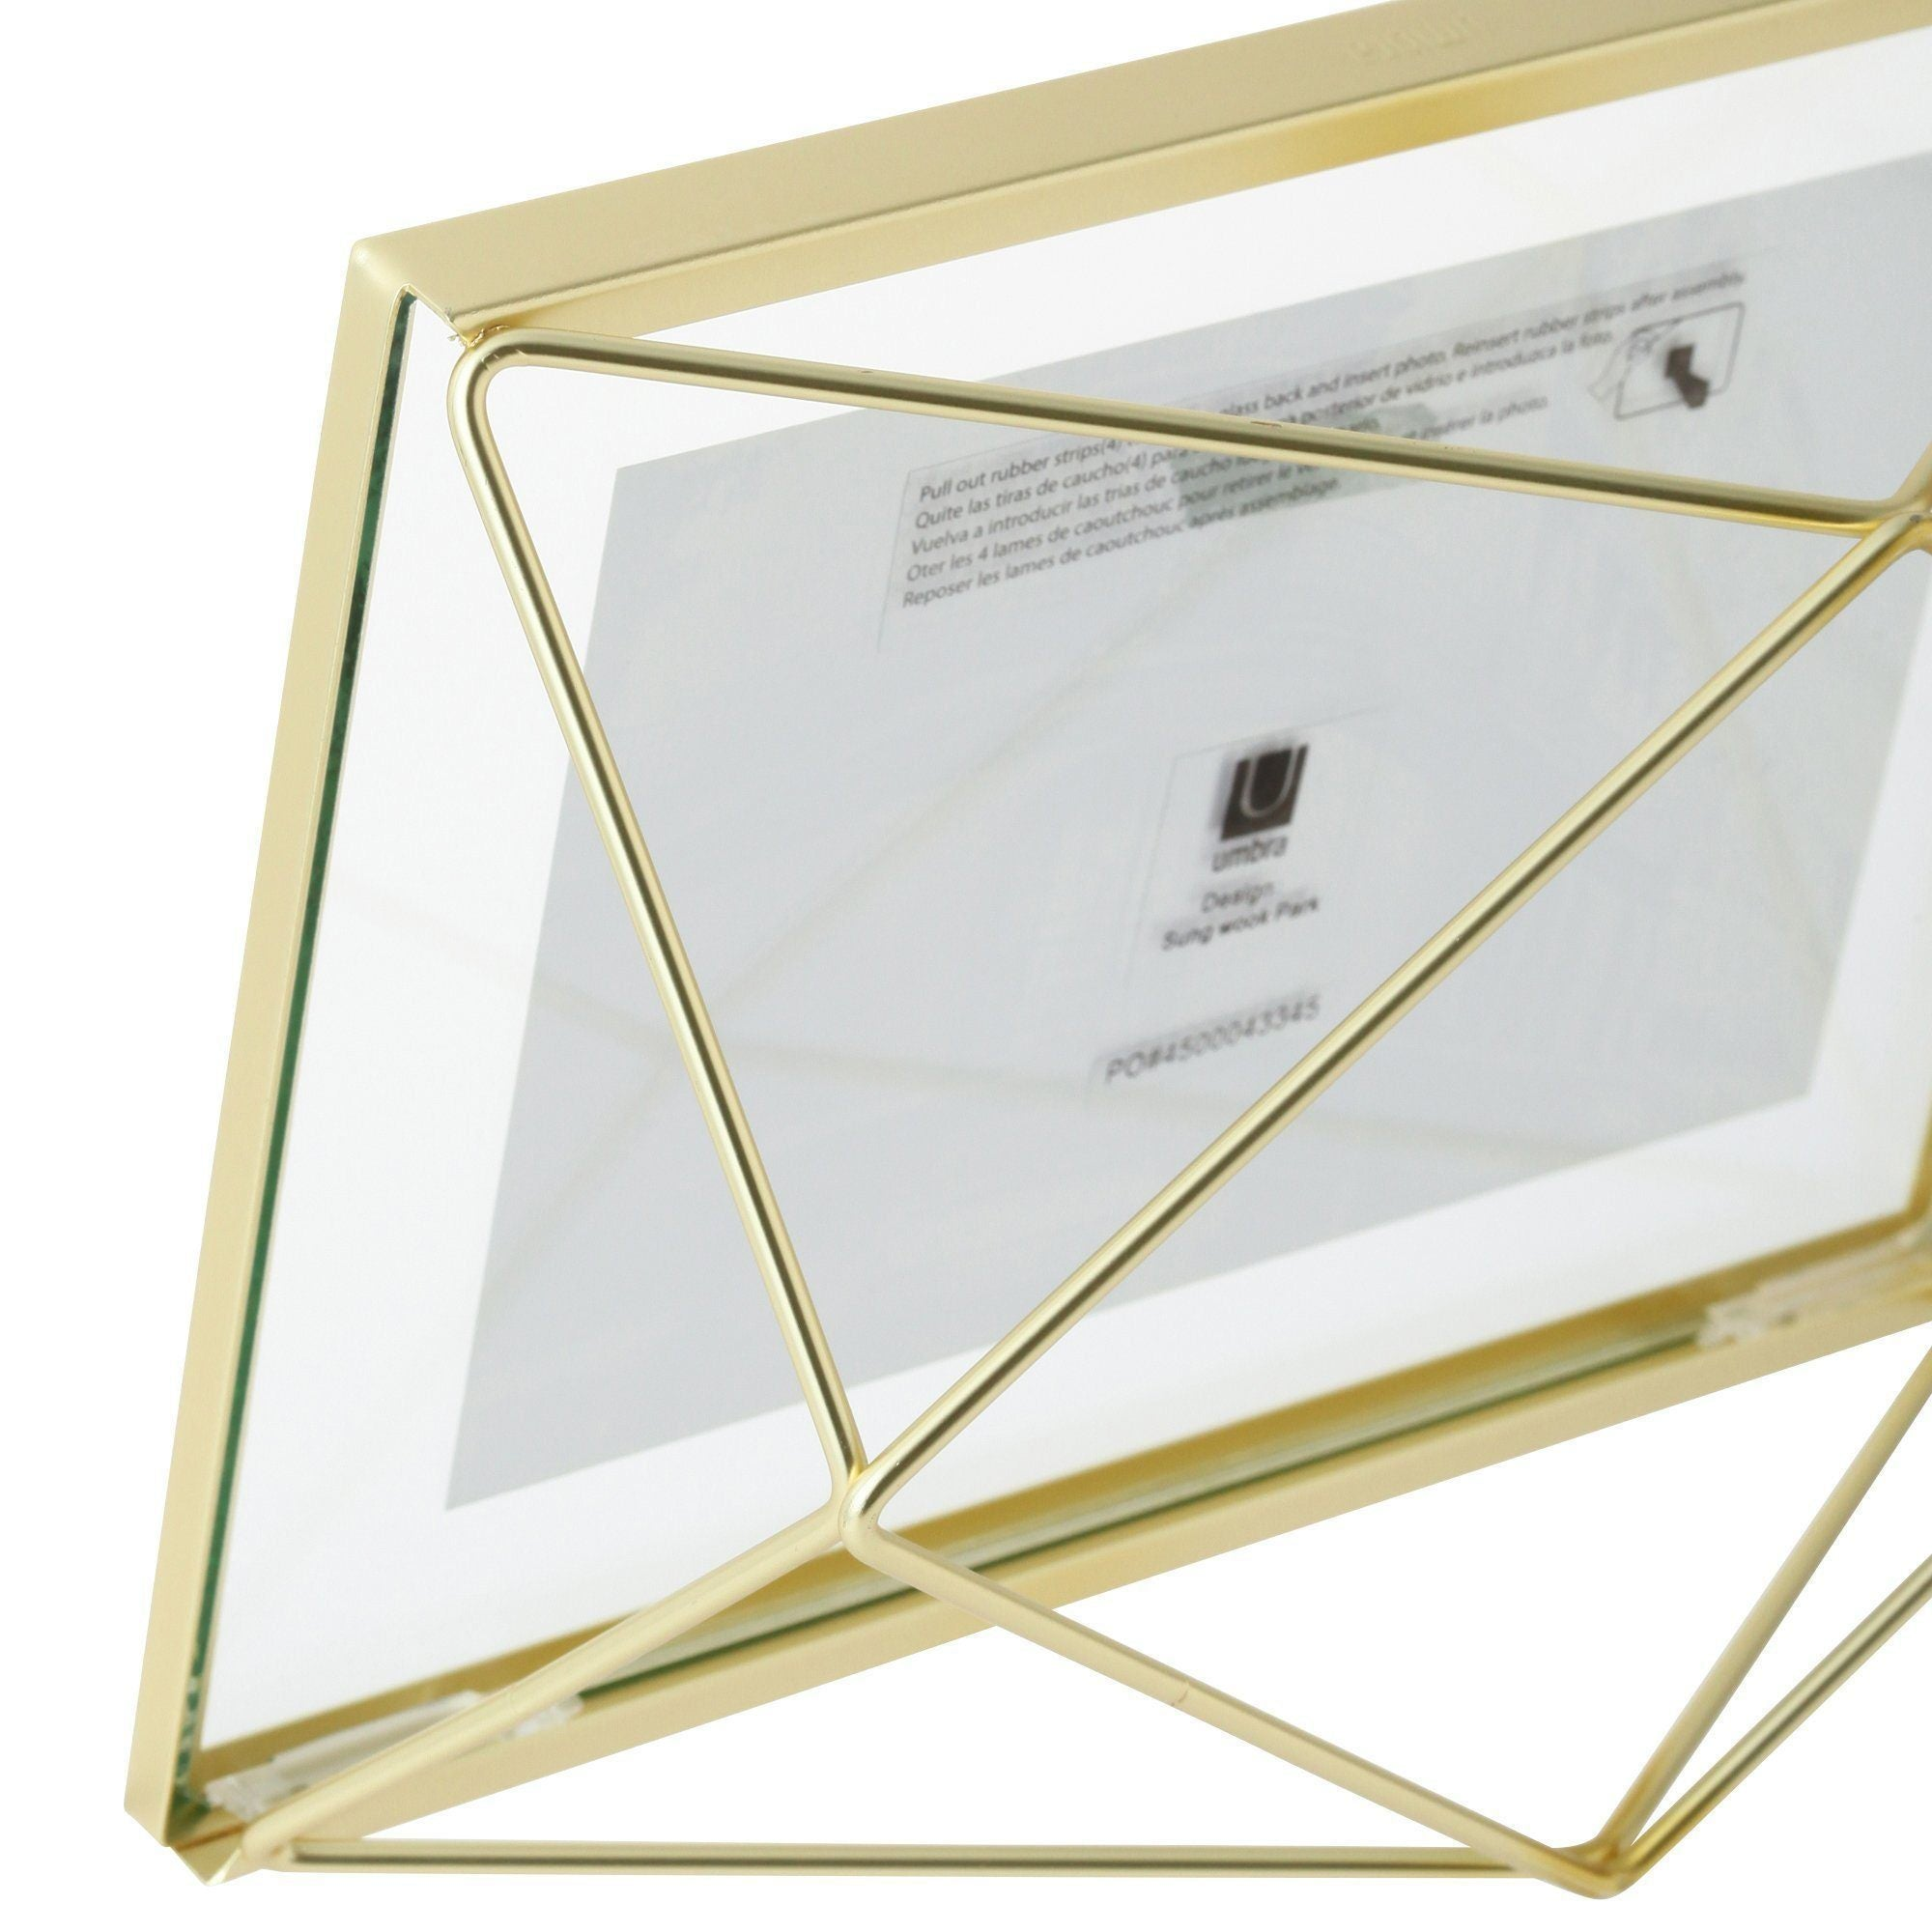 MULTI Glass Frame 1 Gold - weare-francfranc